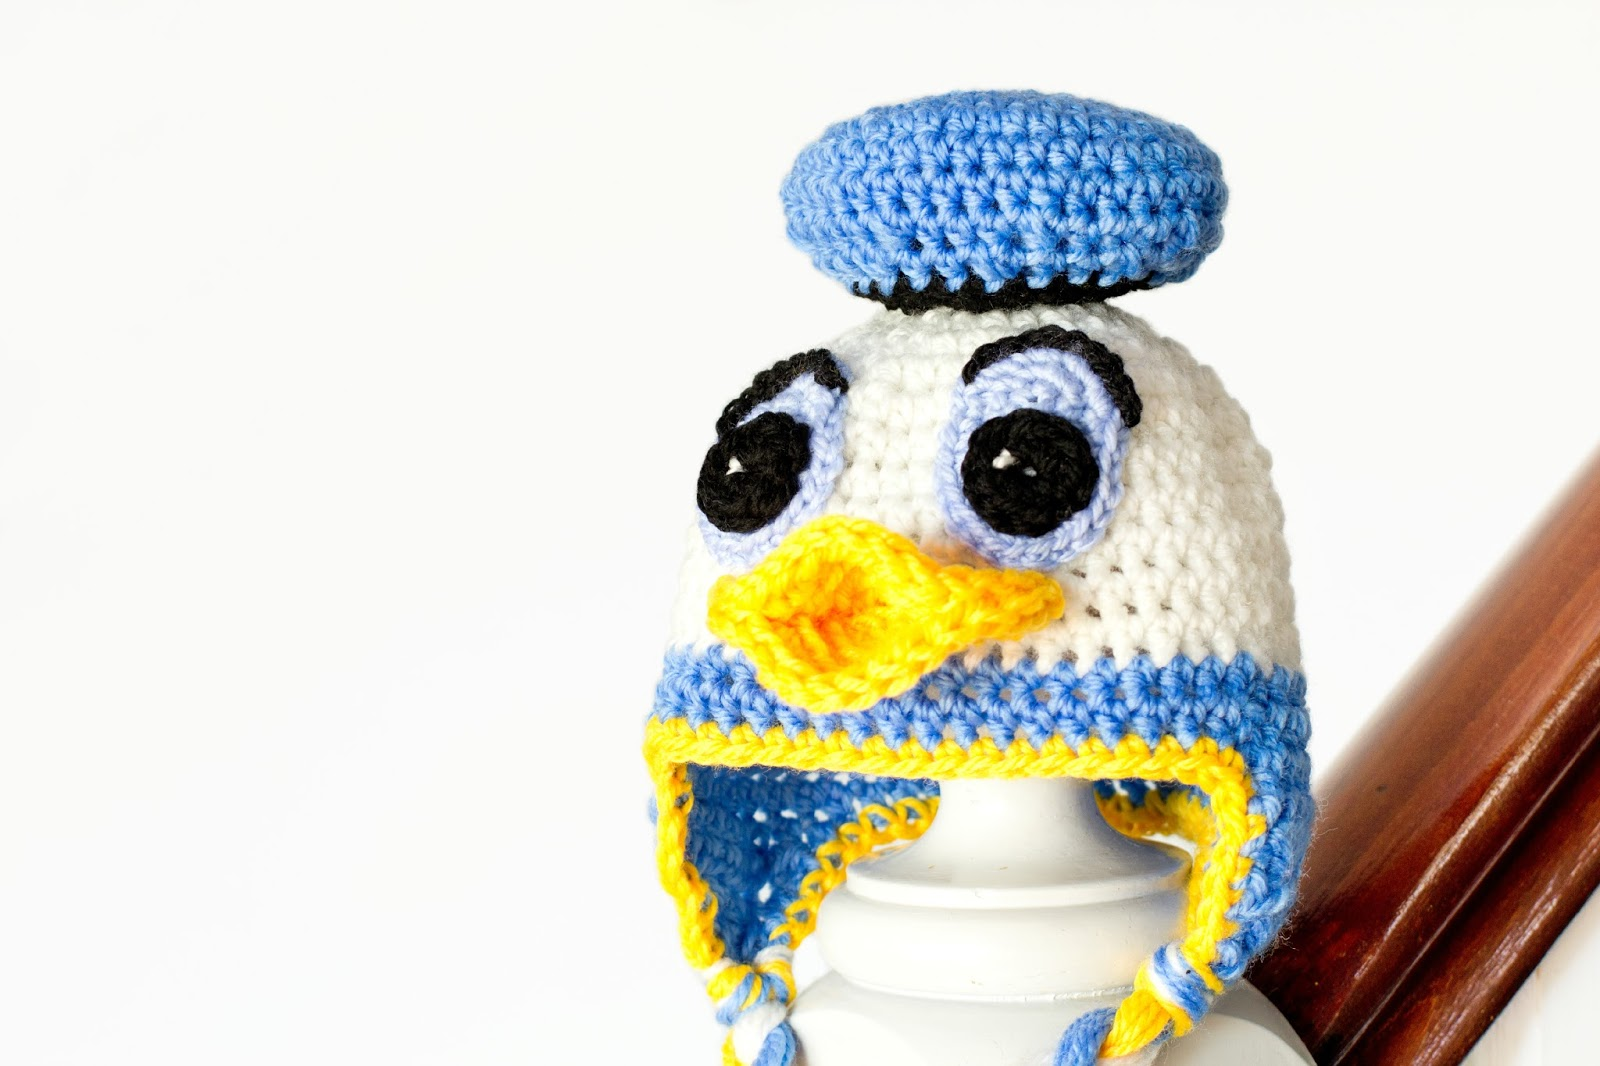 2c978a7136f Tina handicraft donald duck inspired baby hat crochet pattern jpg 1600x1066  Donold ducks hat